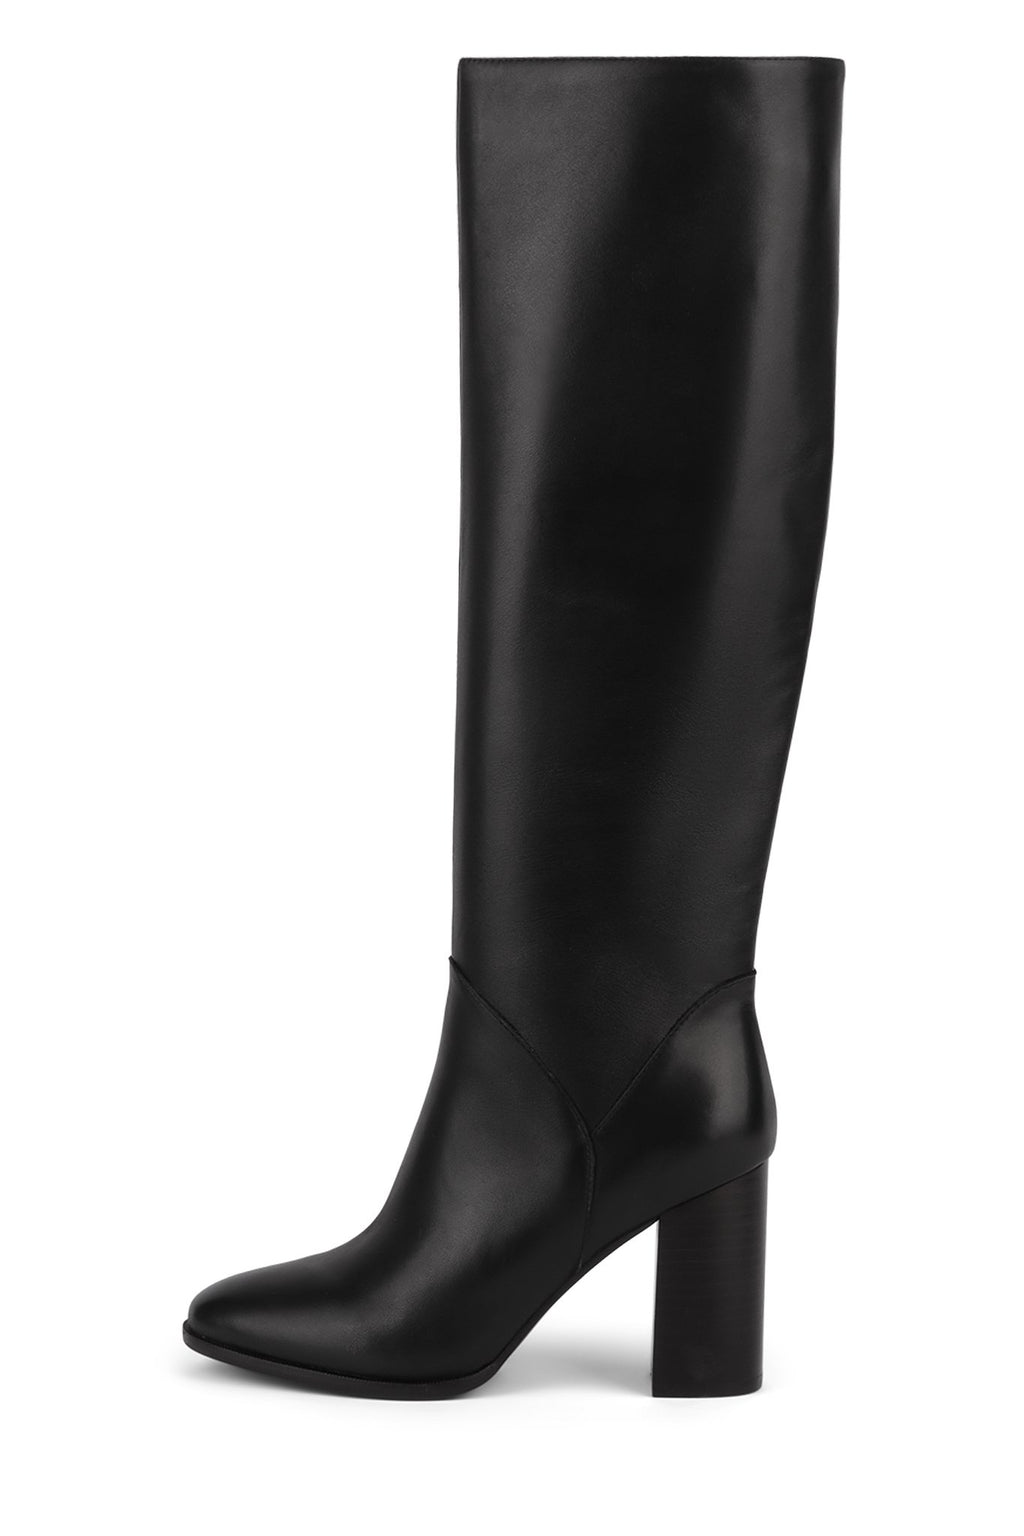 BRIDLE-K Knee-High Boot YYH Black 6